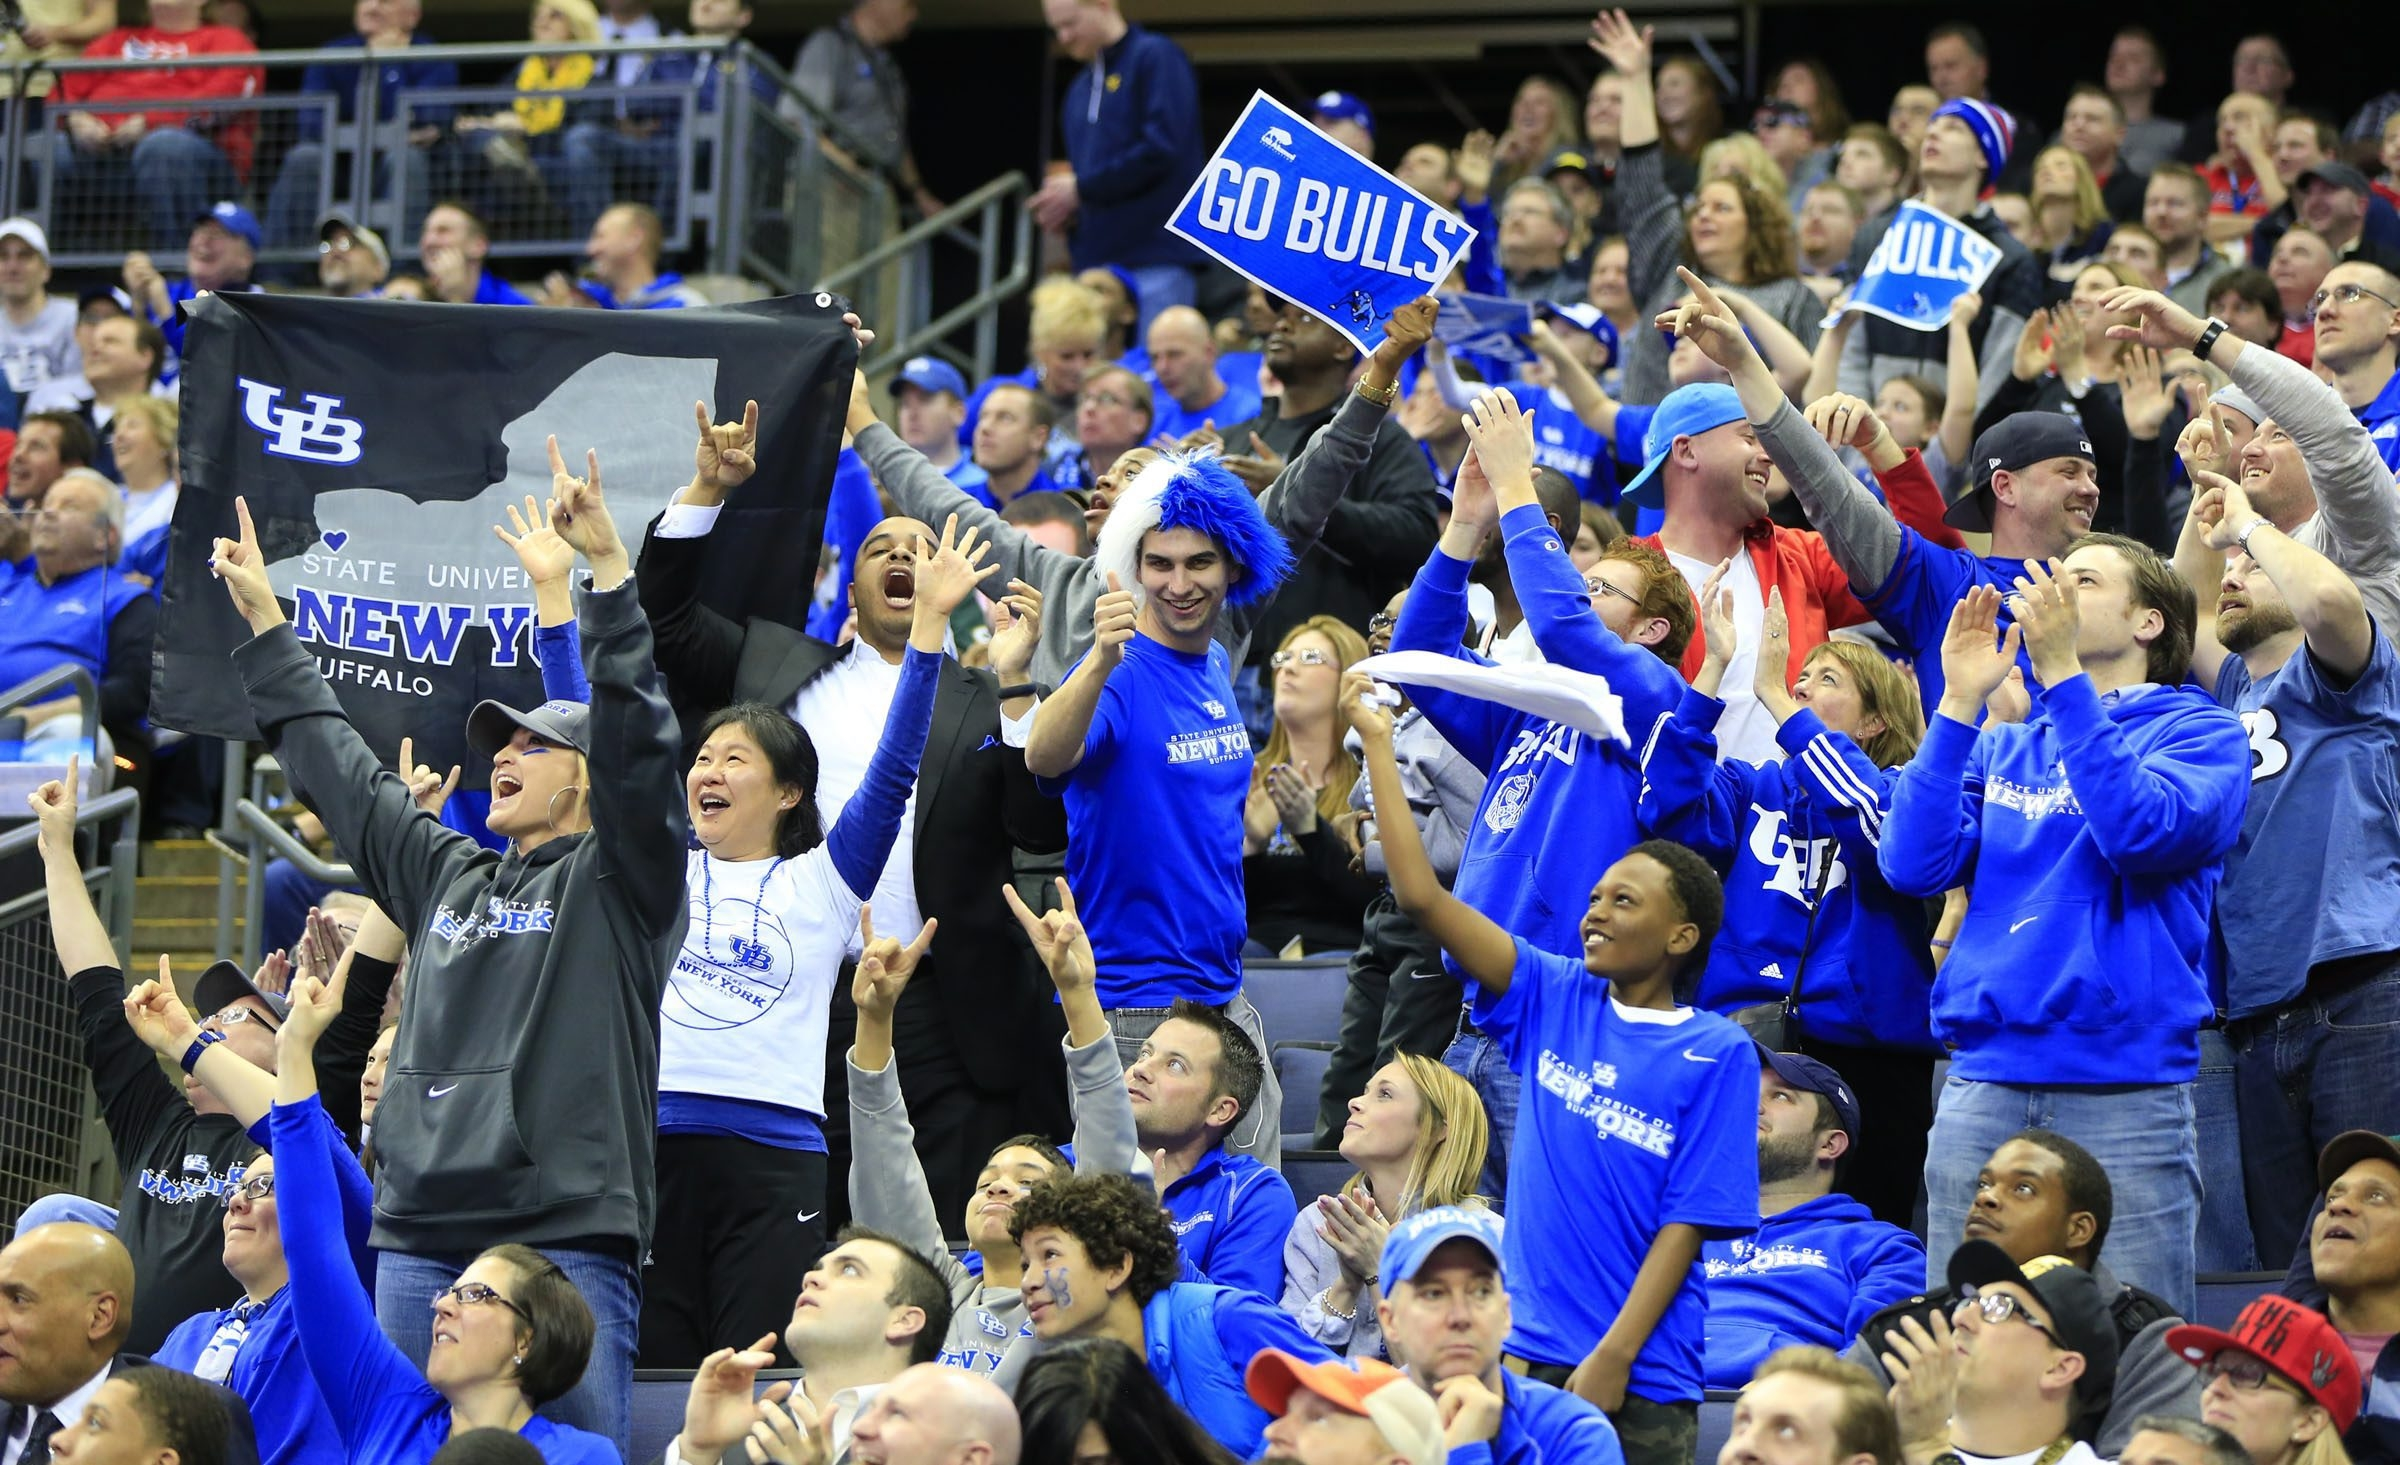 University at Buffalo fans cheer on their team against West Virginia during second half action in the NCAA Men's Basketball second round in Columbus, Ohio, last year. (Harry Scull Jr./Buffalo News)